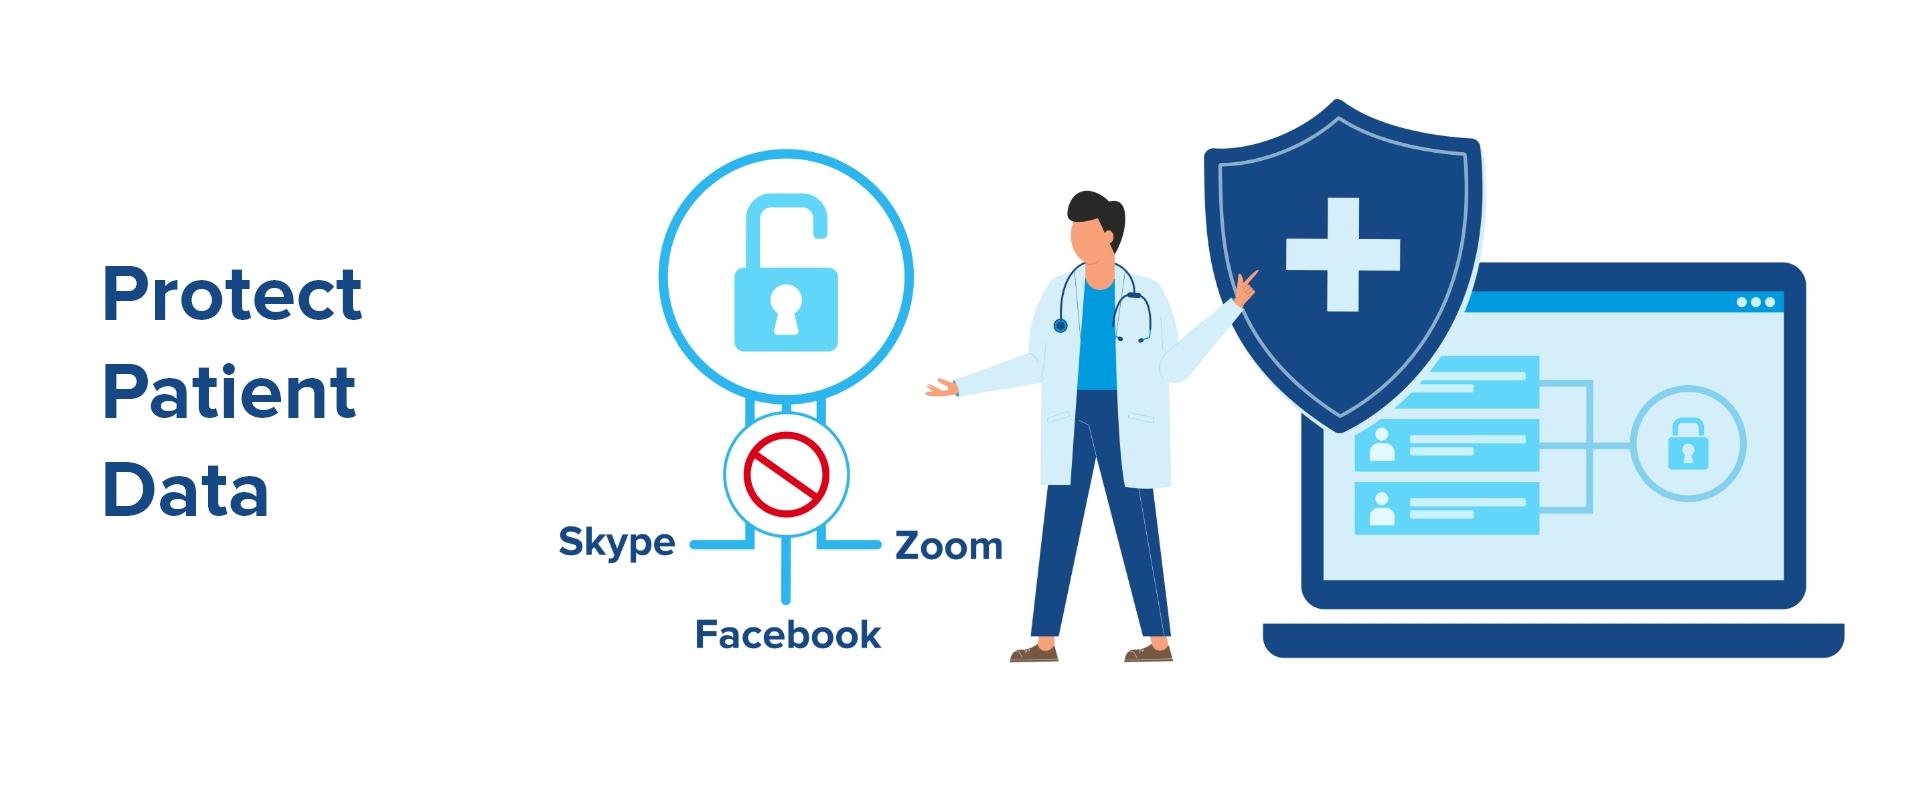 telehealth solution should be secure and hipaa compliant